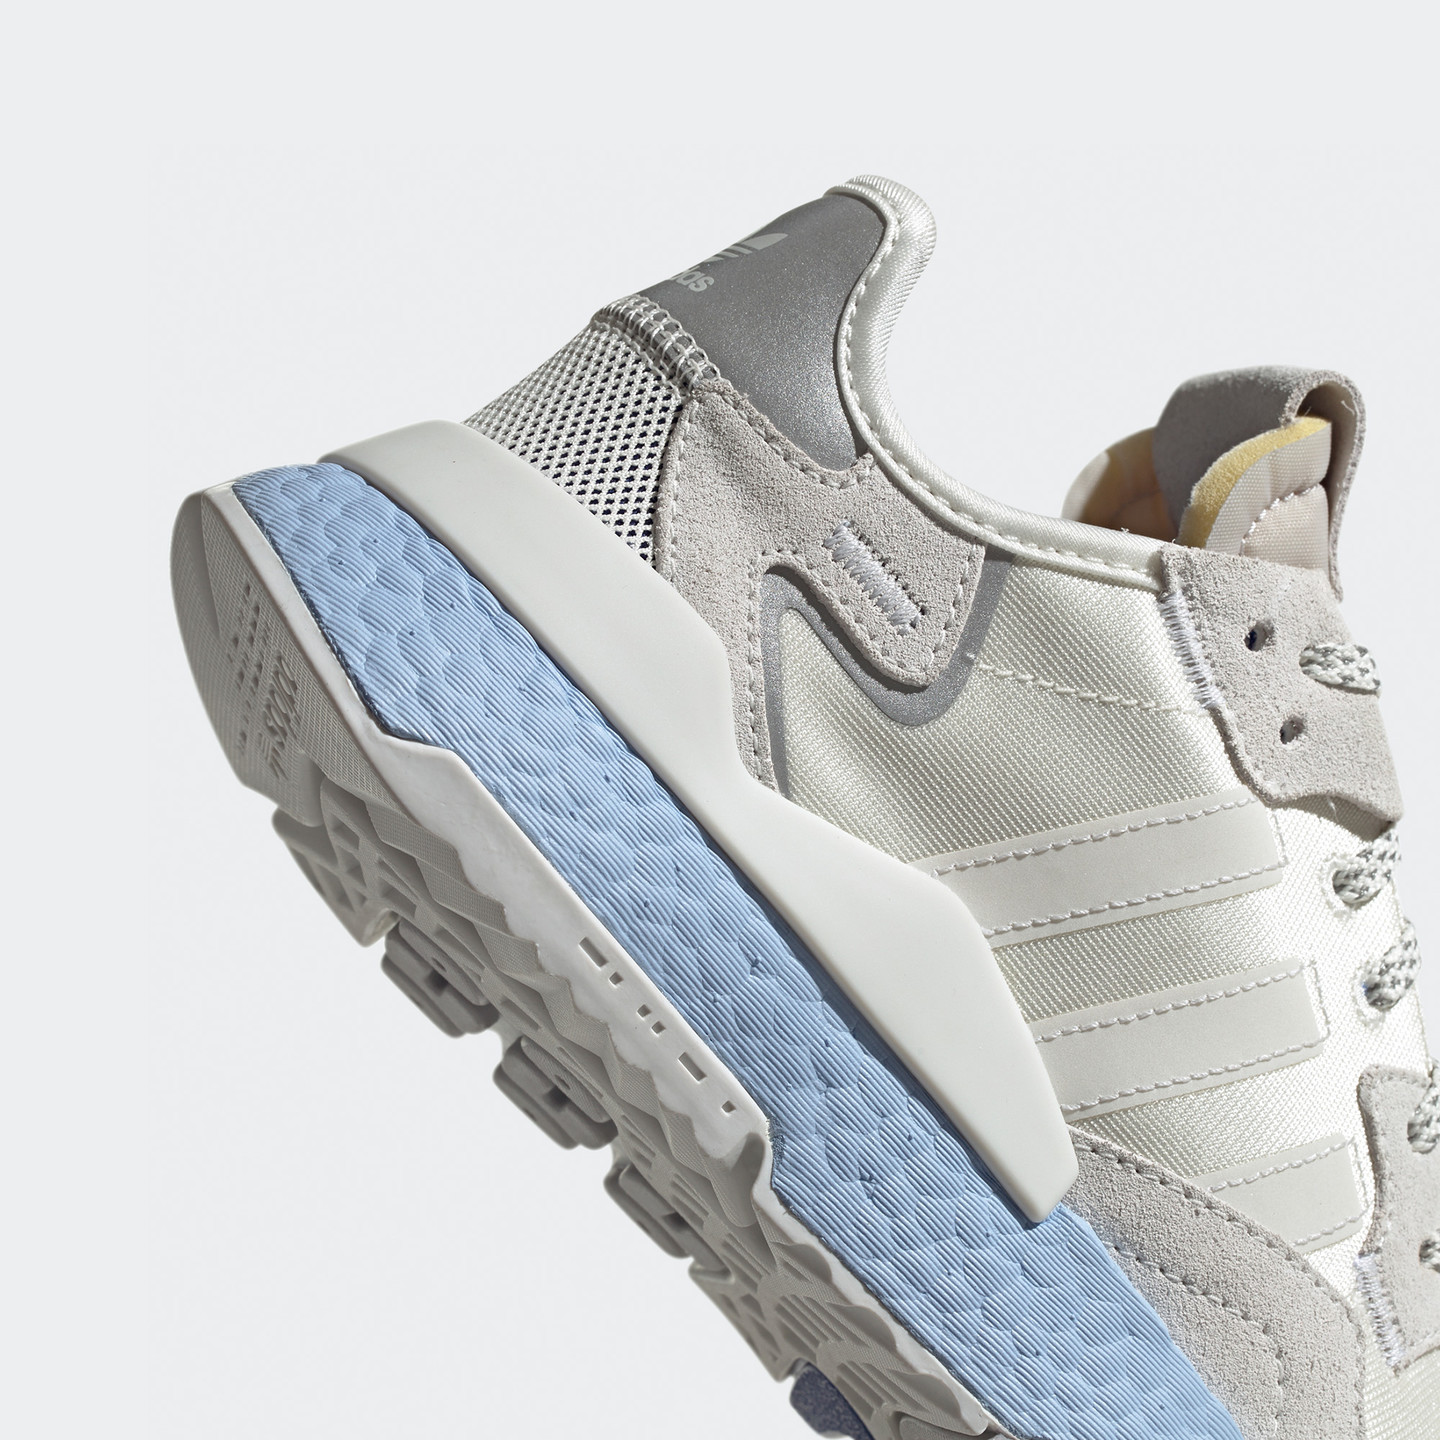 Adidas Nite Jogger W Off White / Global Blue EE5910